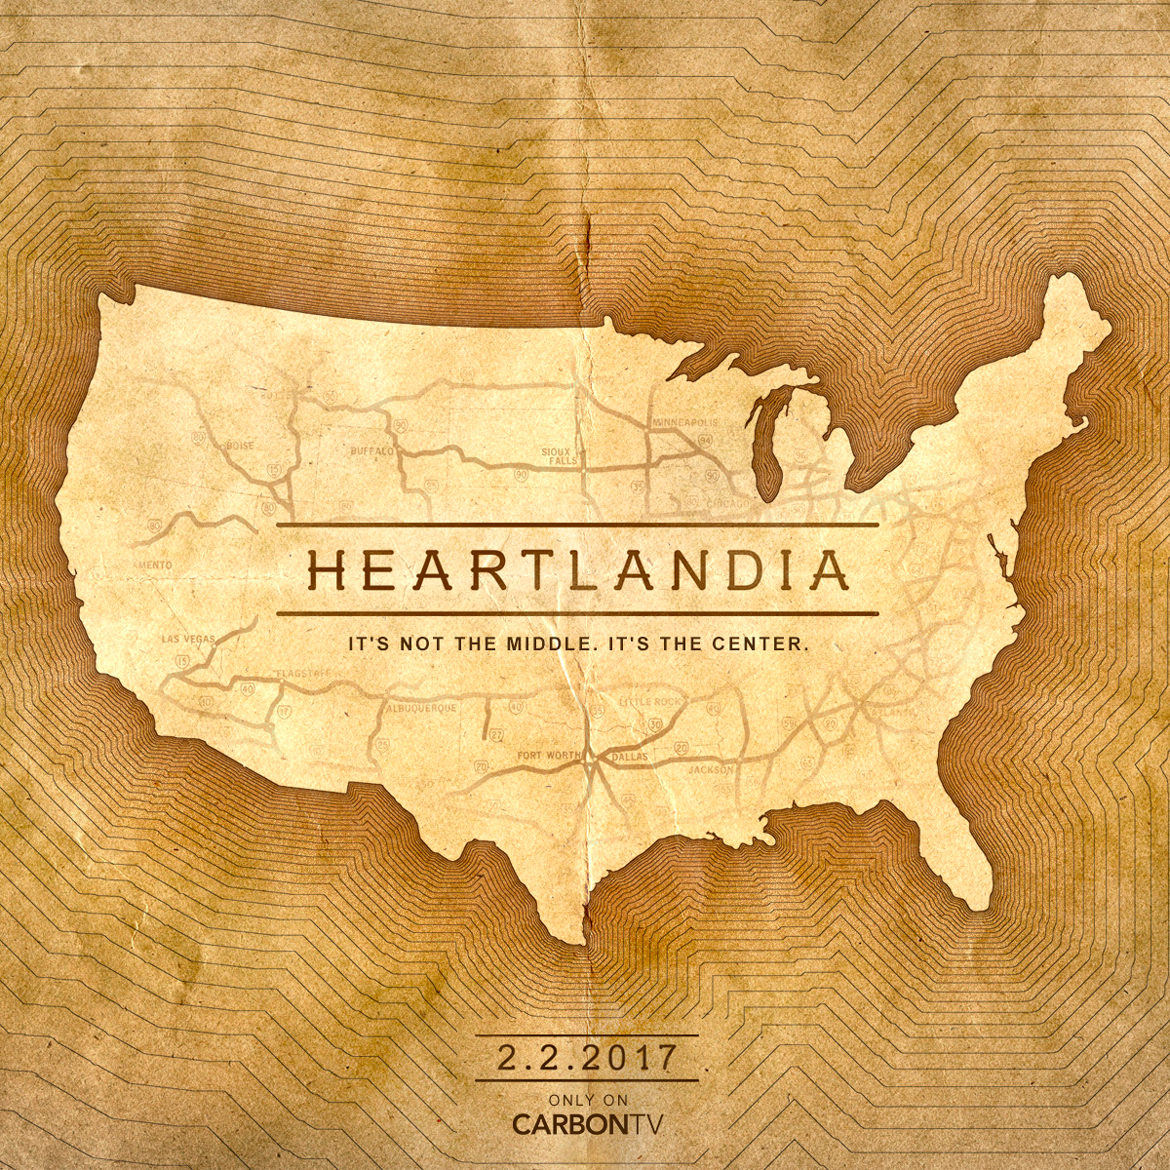 Heartlandia ad. Carbon TV.